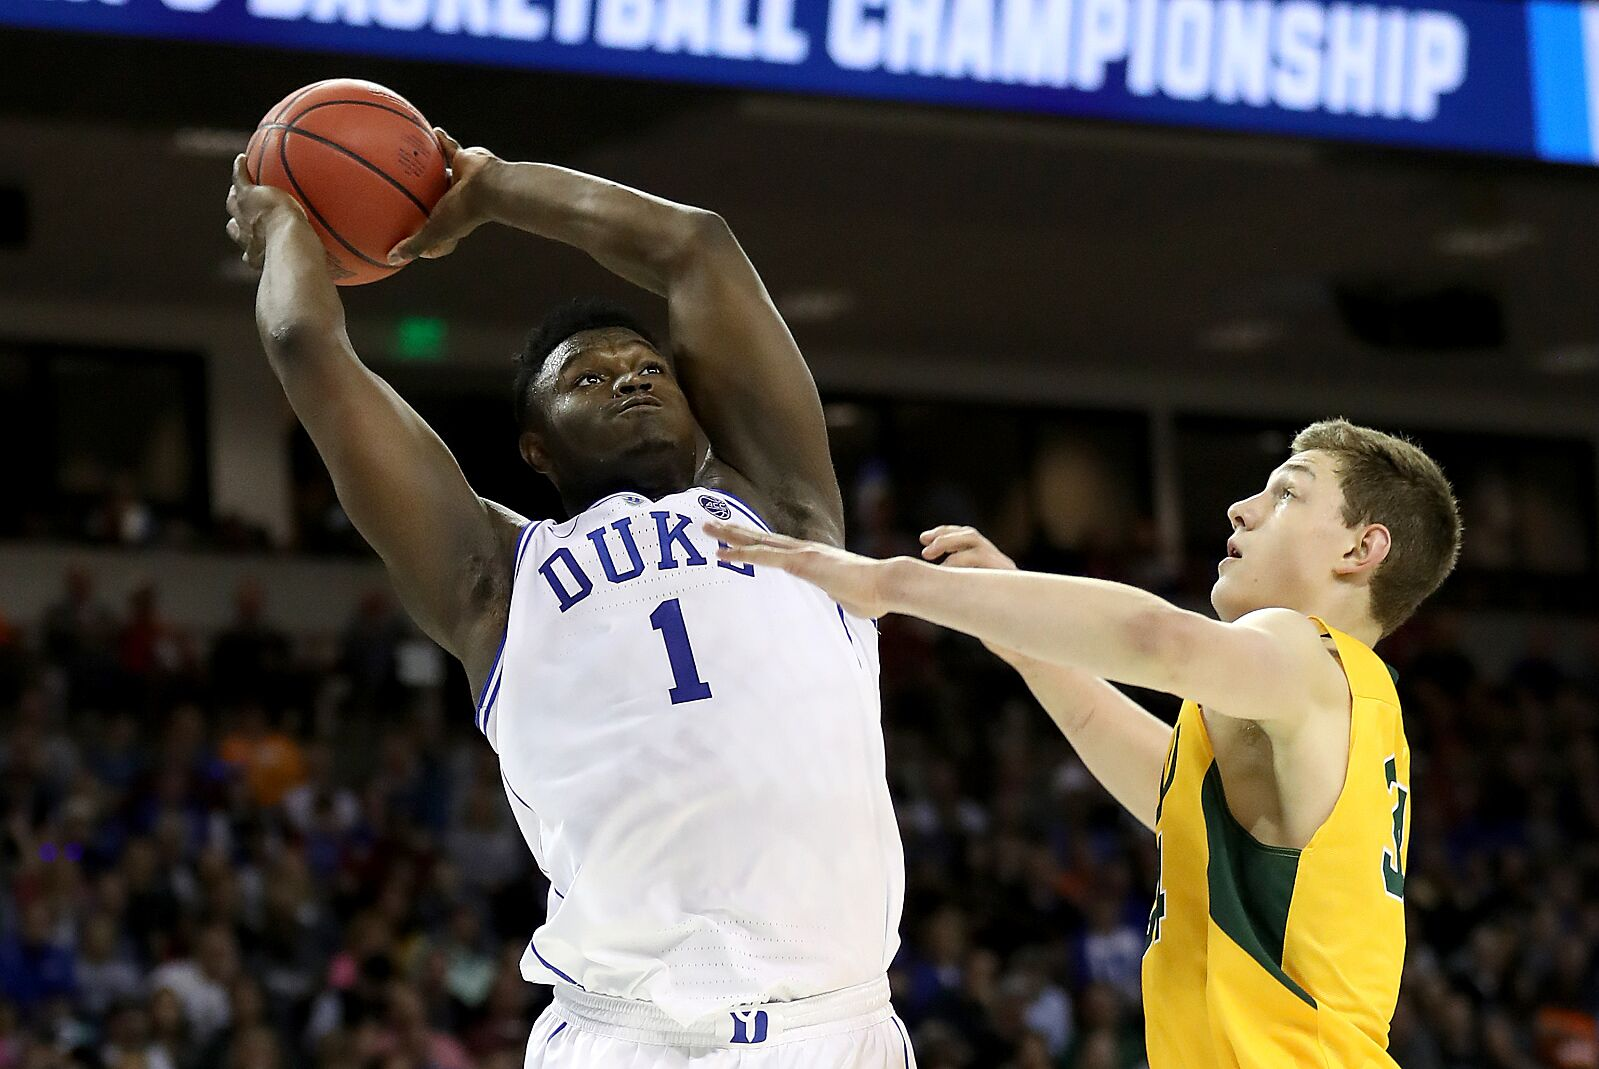 March Madness 2019 Zion Williamson Throws Down Multiple: March Madness: Top Takeaways From 2019 NCAA Tournament